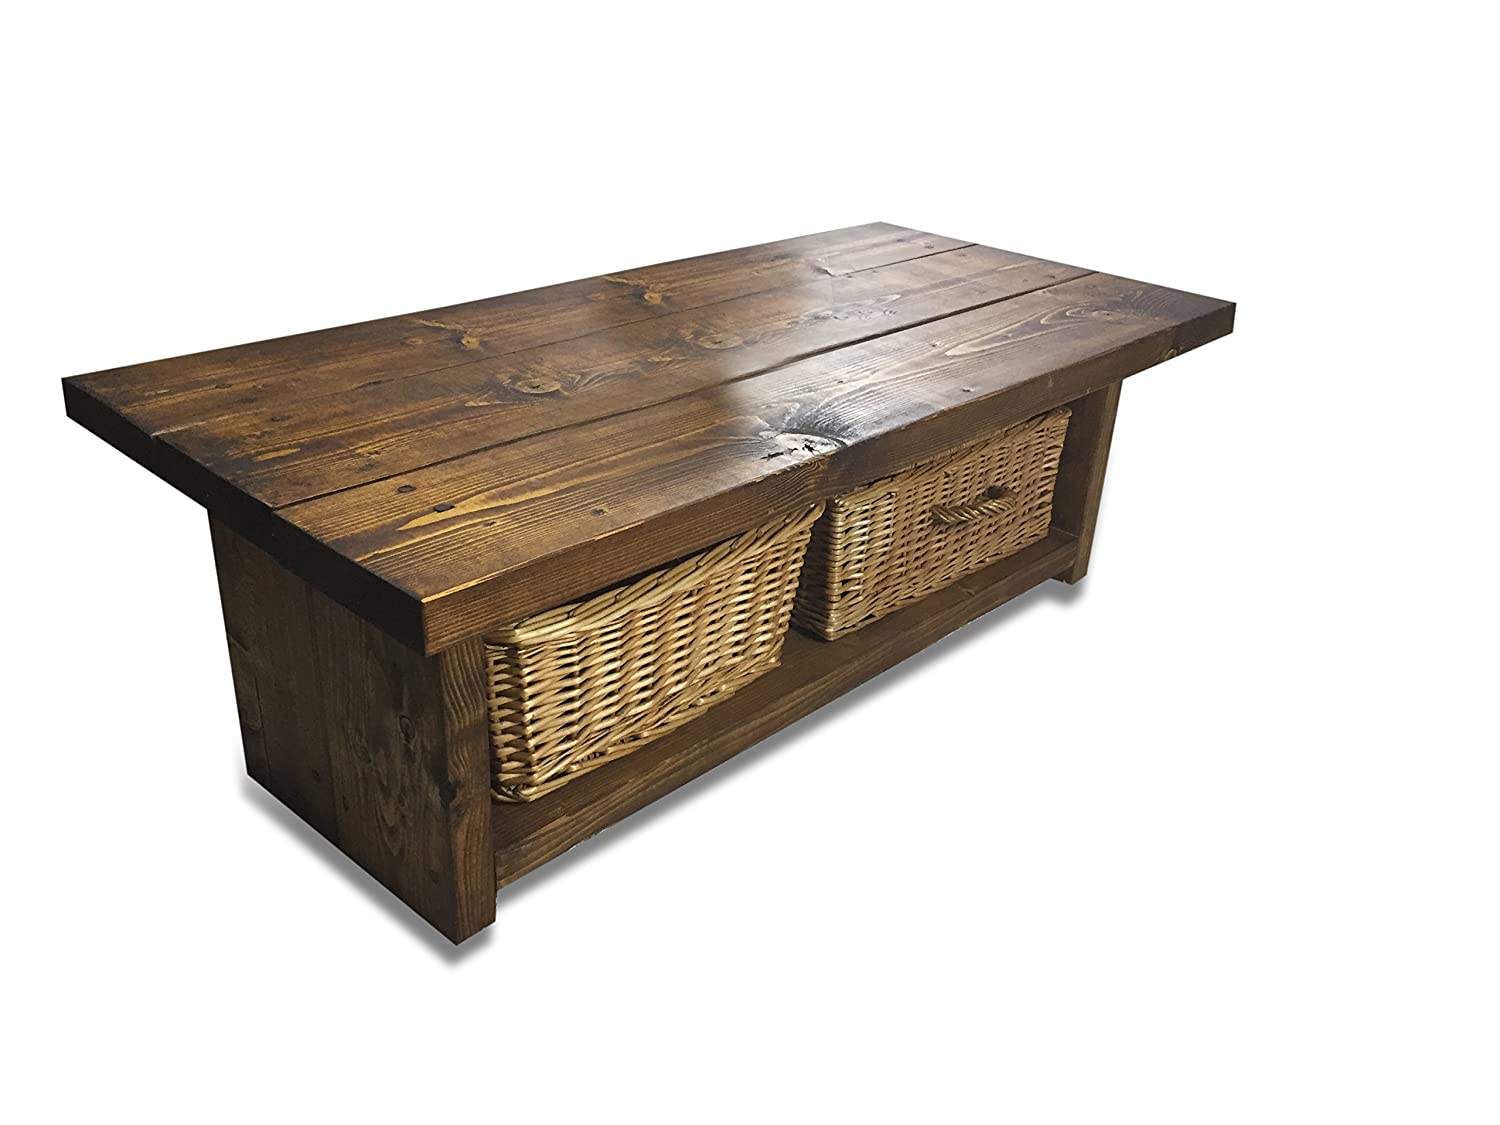 - Solid Rustic Handmade Pine Coffee Table Lymington, Finished In A